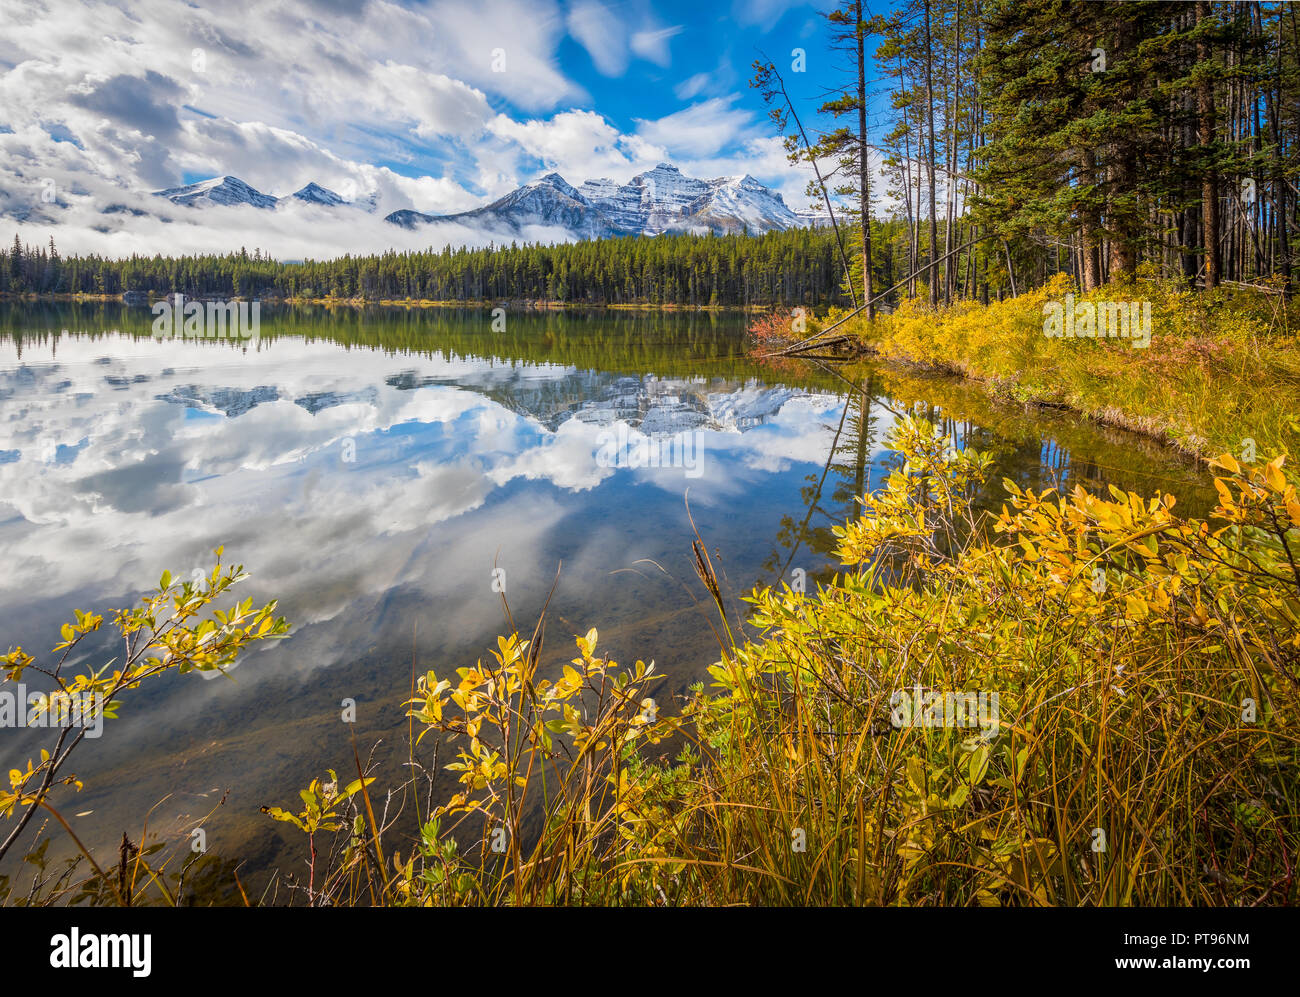 Herbert Lake in Banff National Park in Alberta, Canada. Banff National Park is Canada's oldest national park and was established in 1885. Located in t - Stock Image